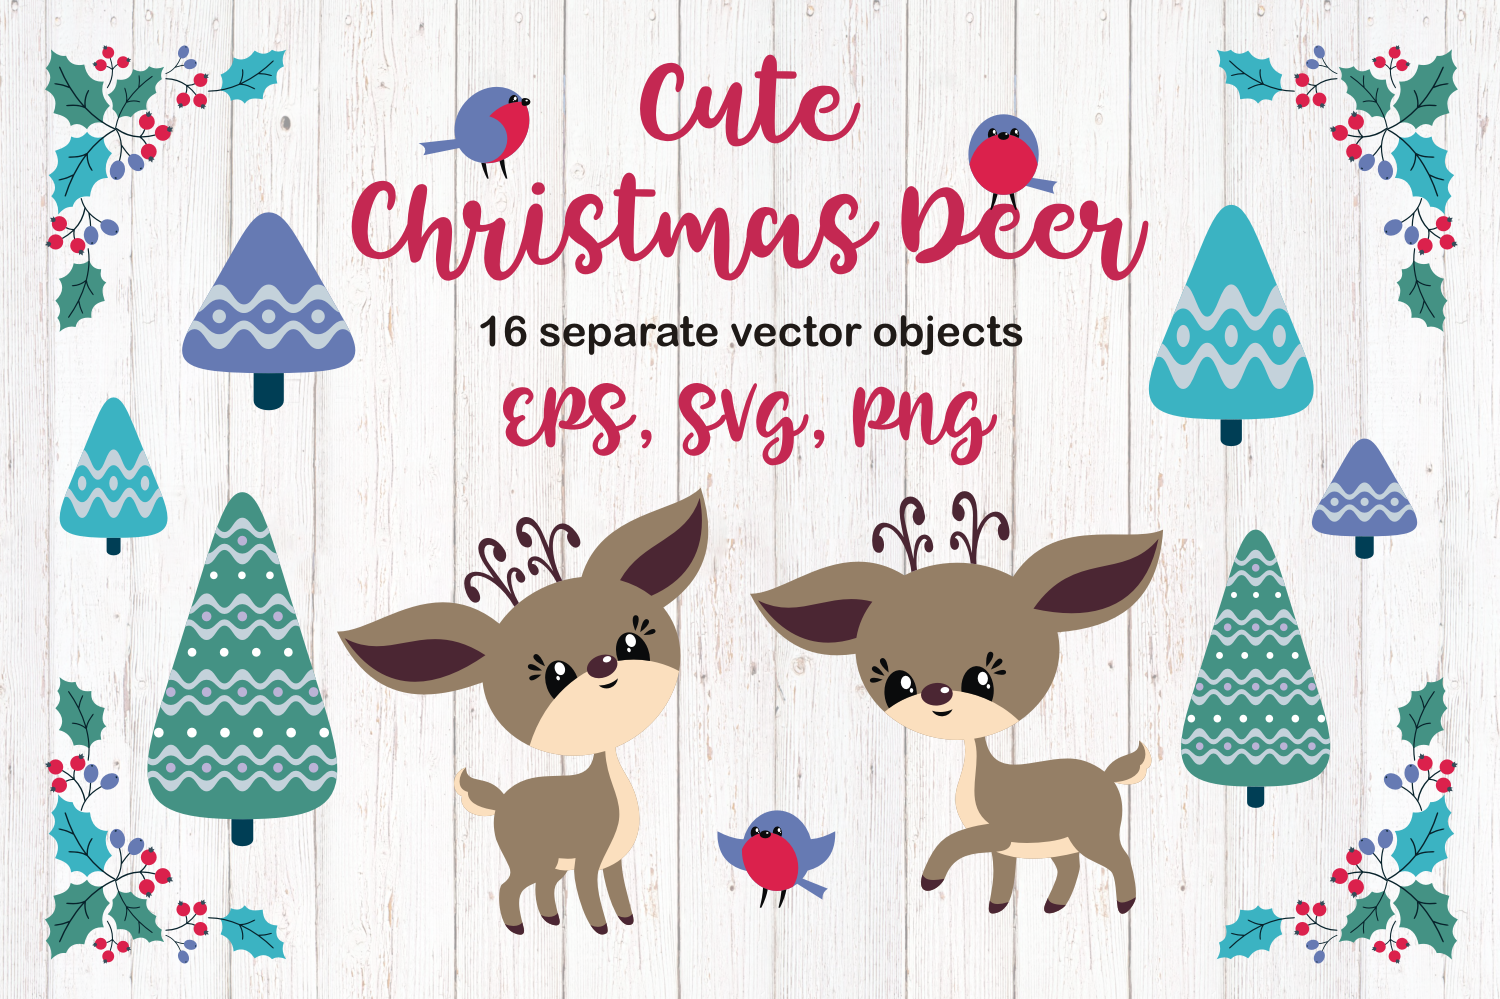 Download Free Cute Christmas Deer Graphic By Olga Belova Creative Fabrica for Cricut Explore, Silhouette and other cutting machines.